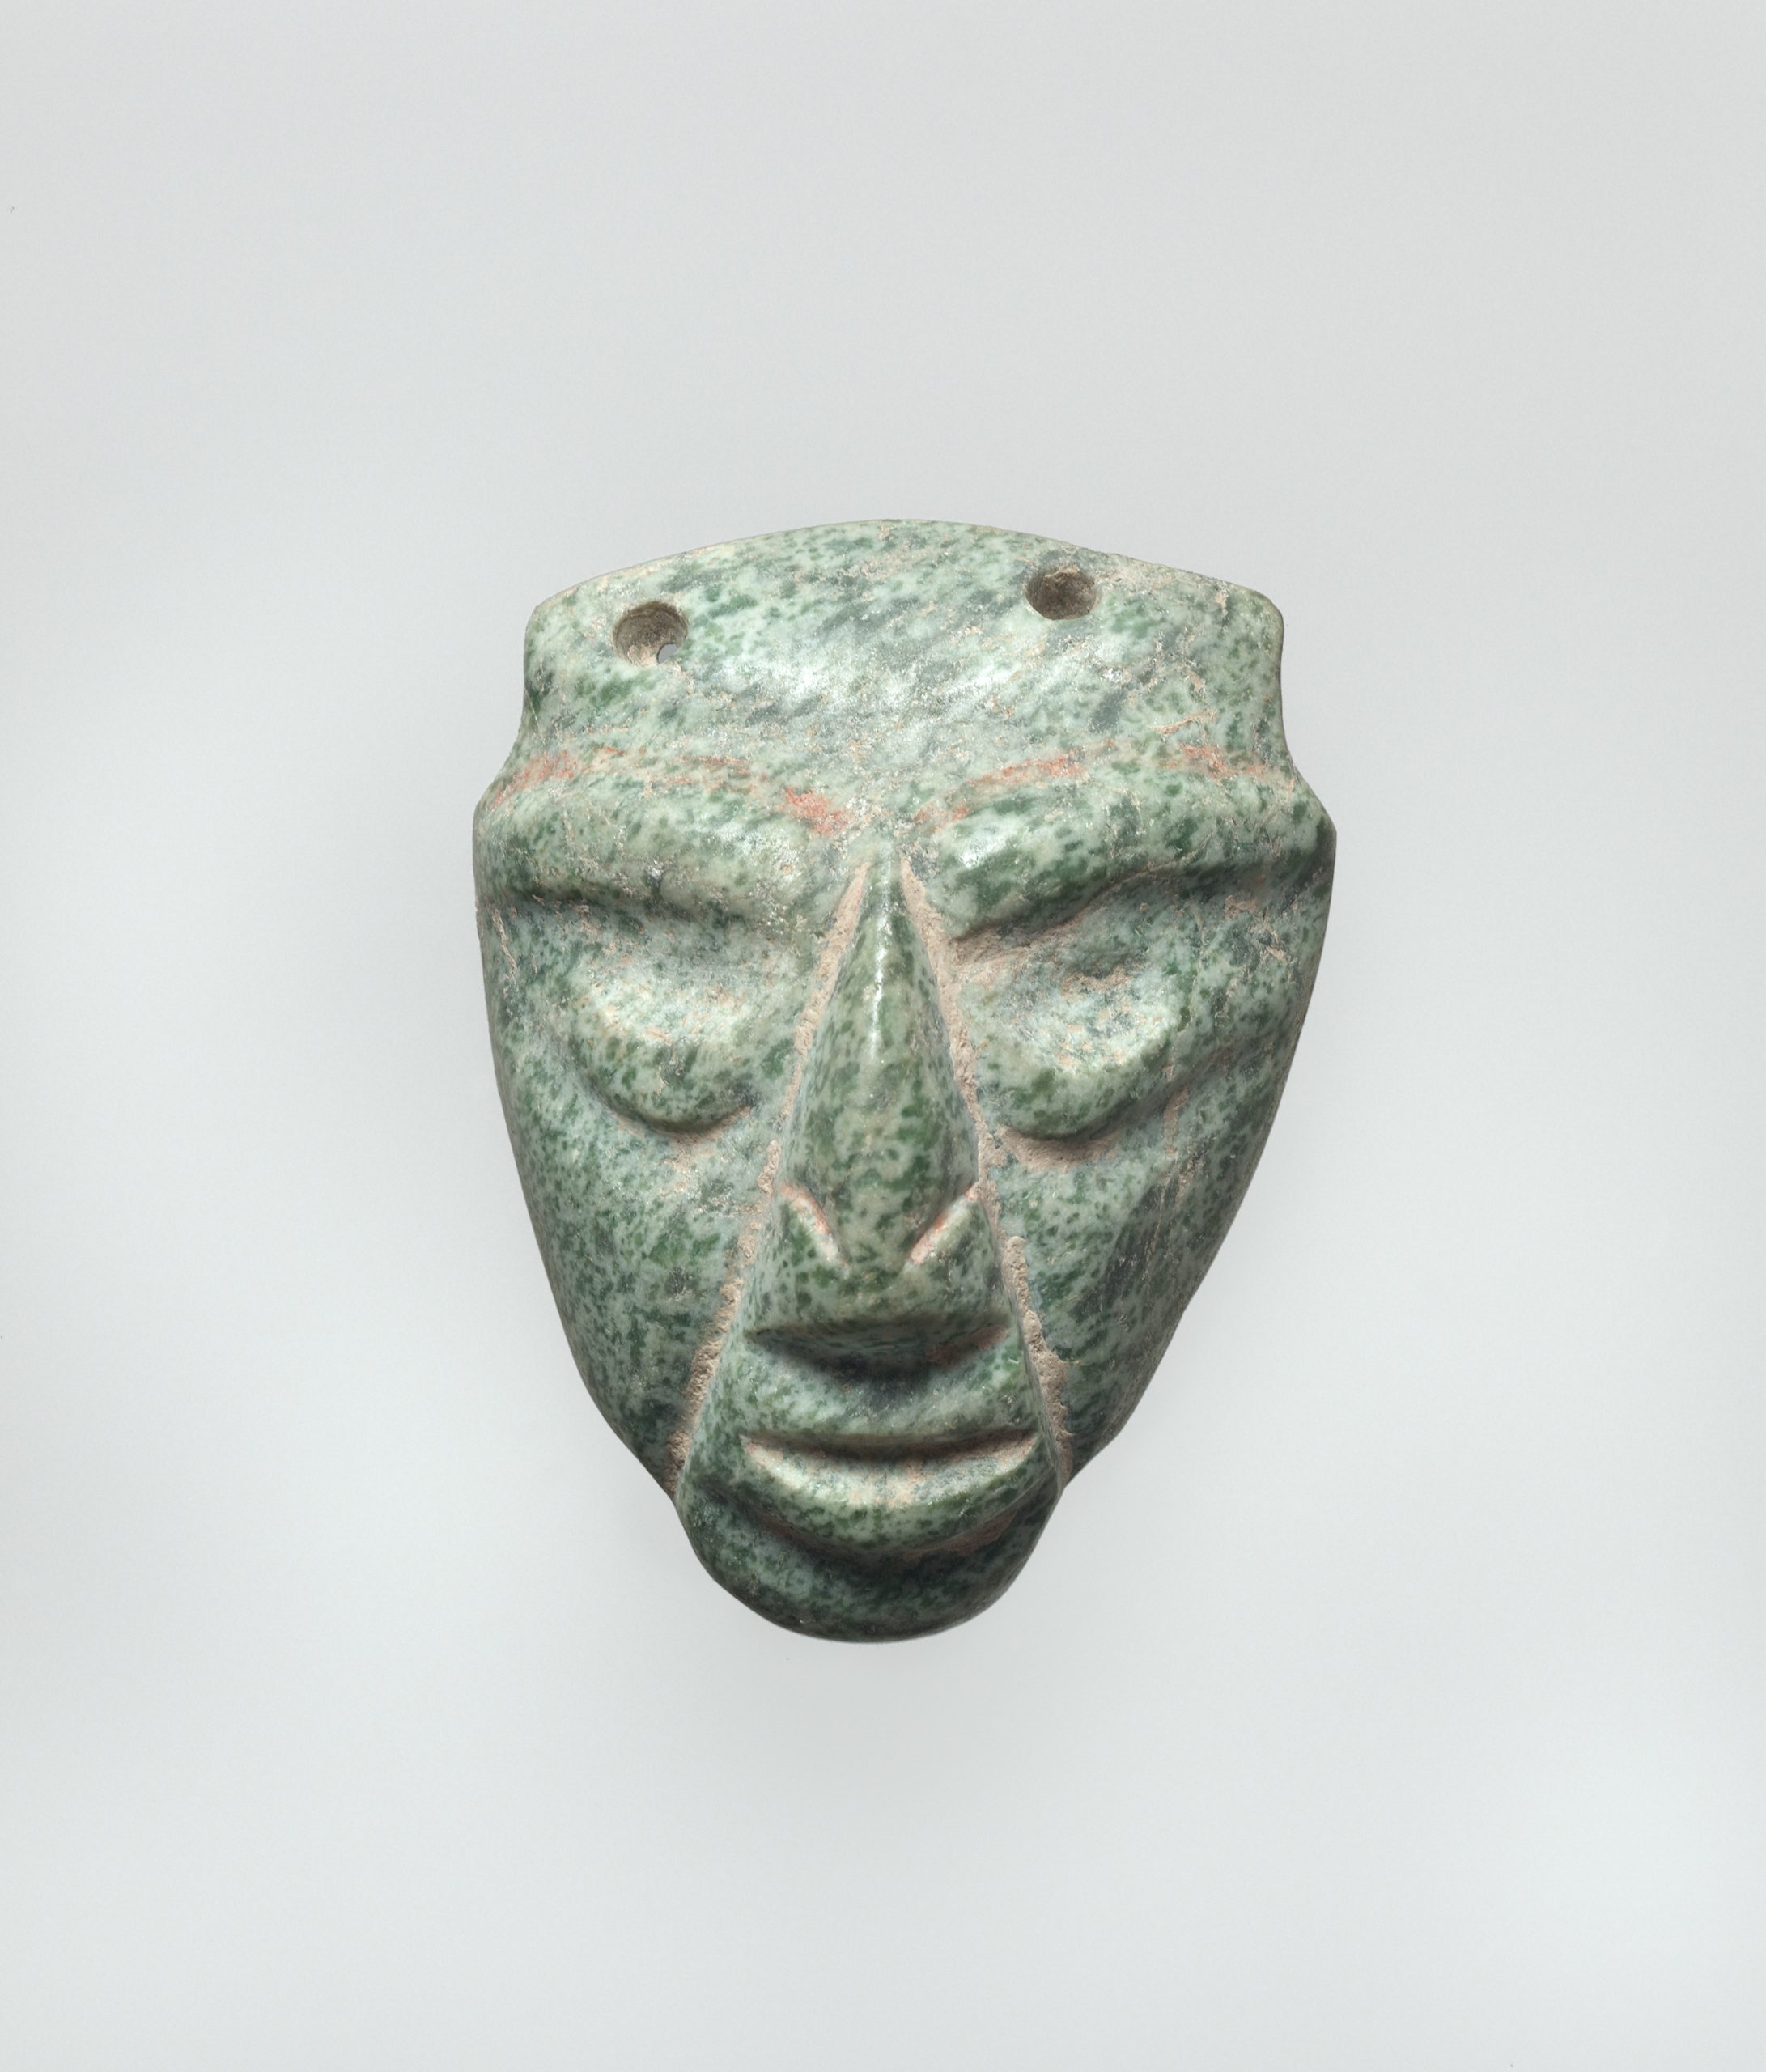 Face pendant with large pointed nose and indented features representing eyes and mouth.